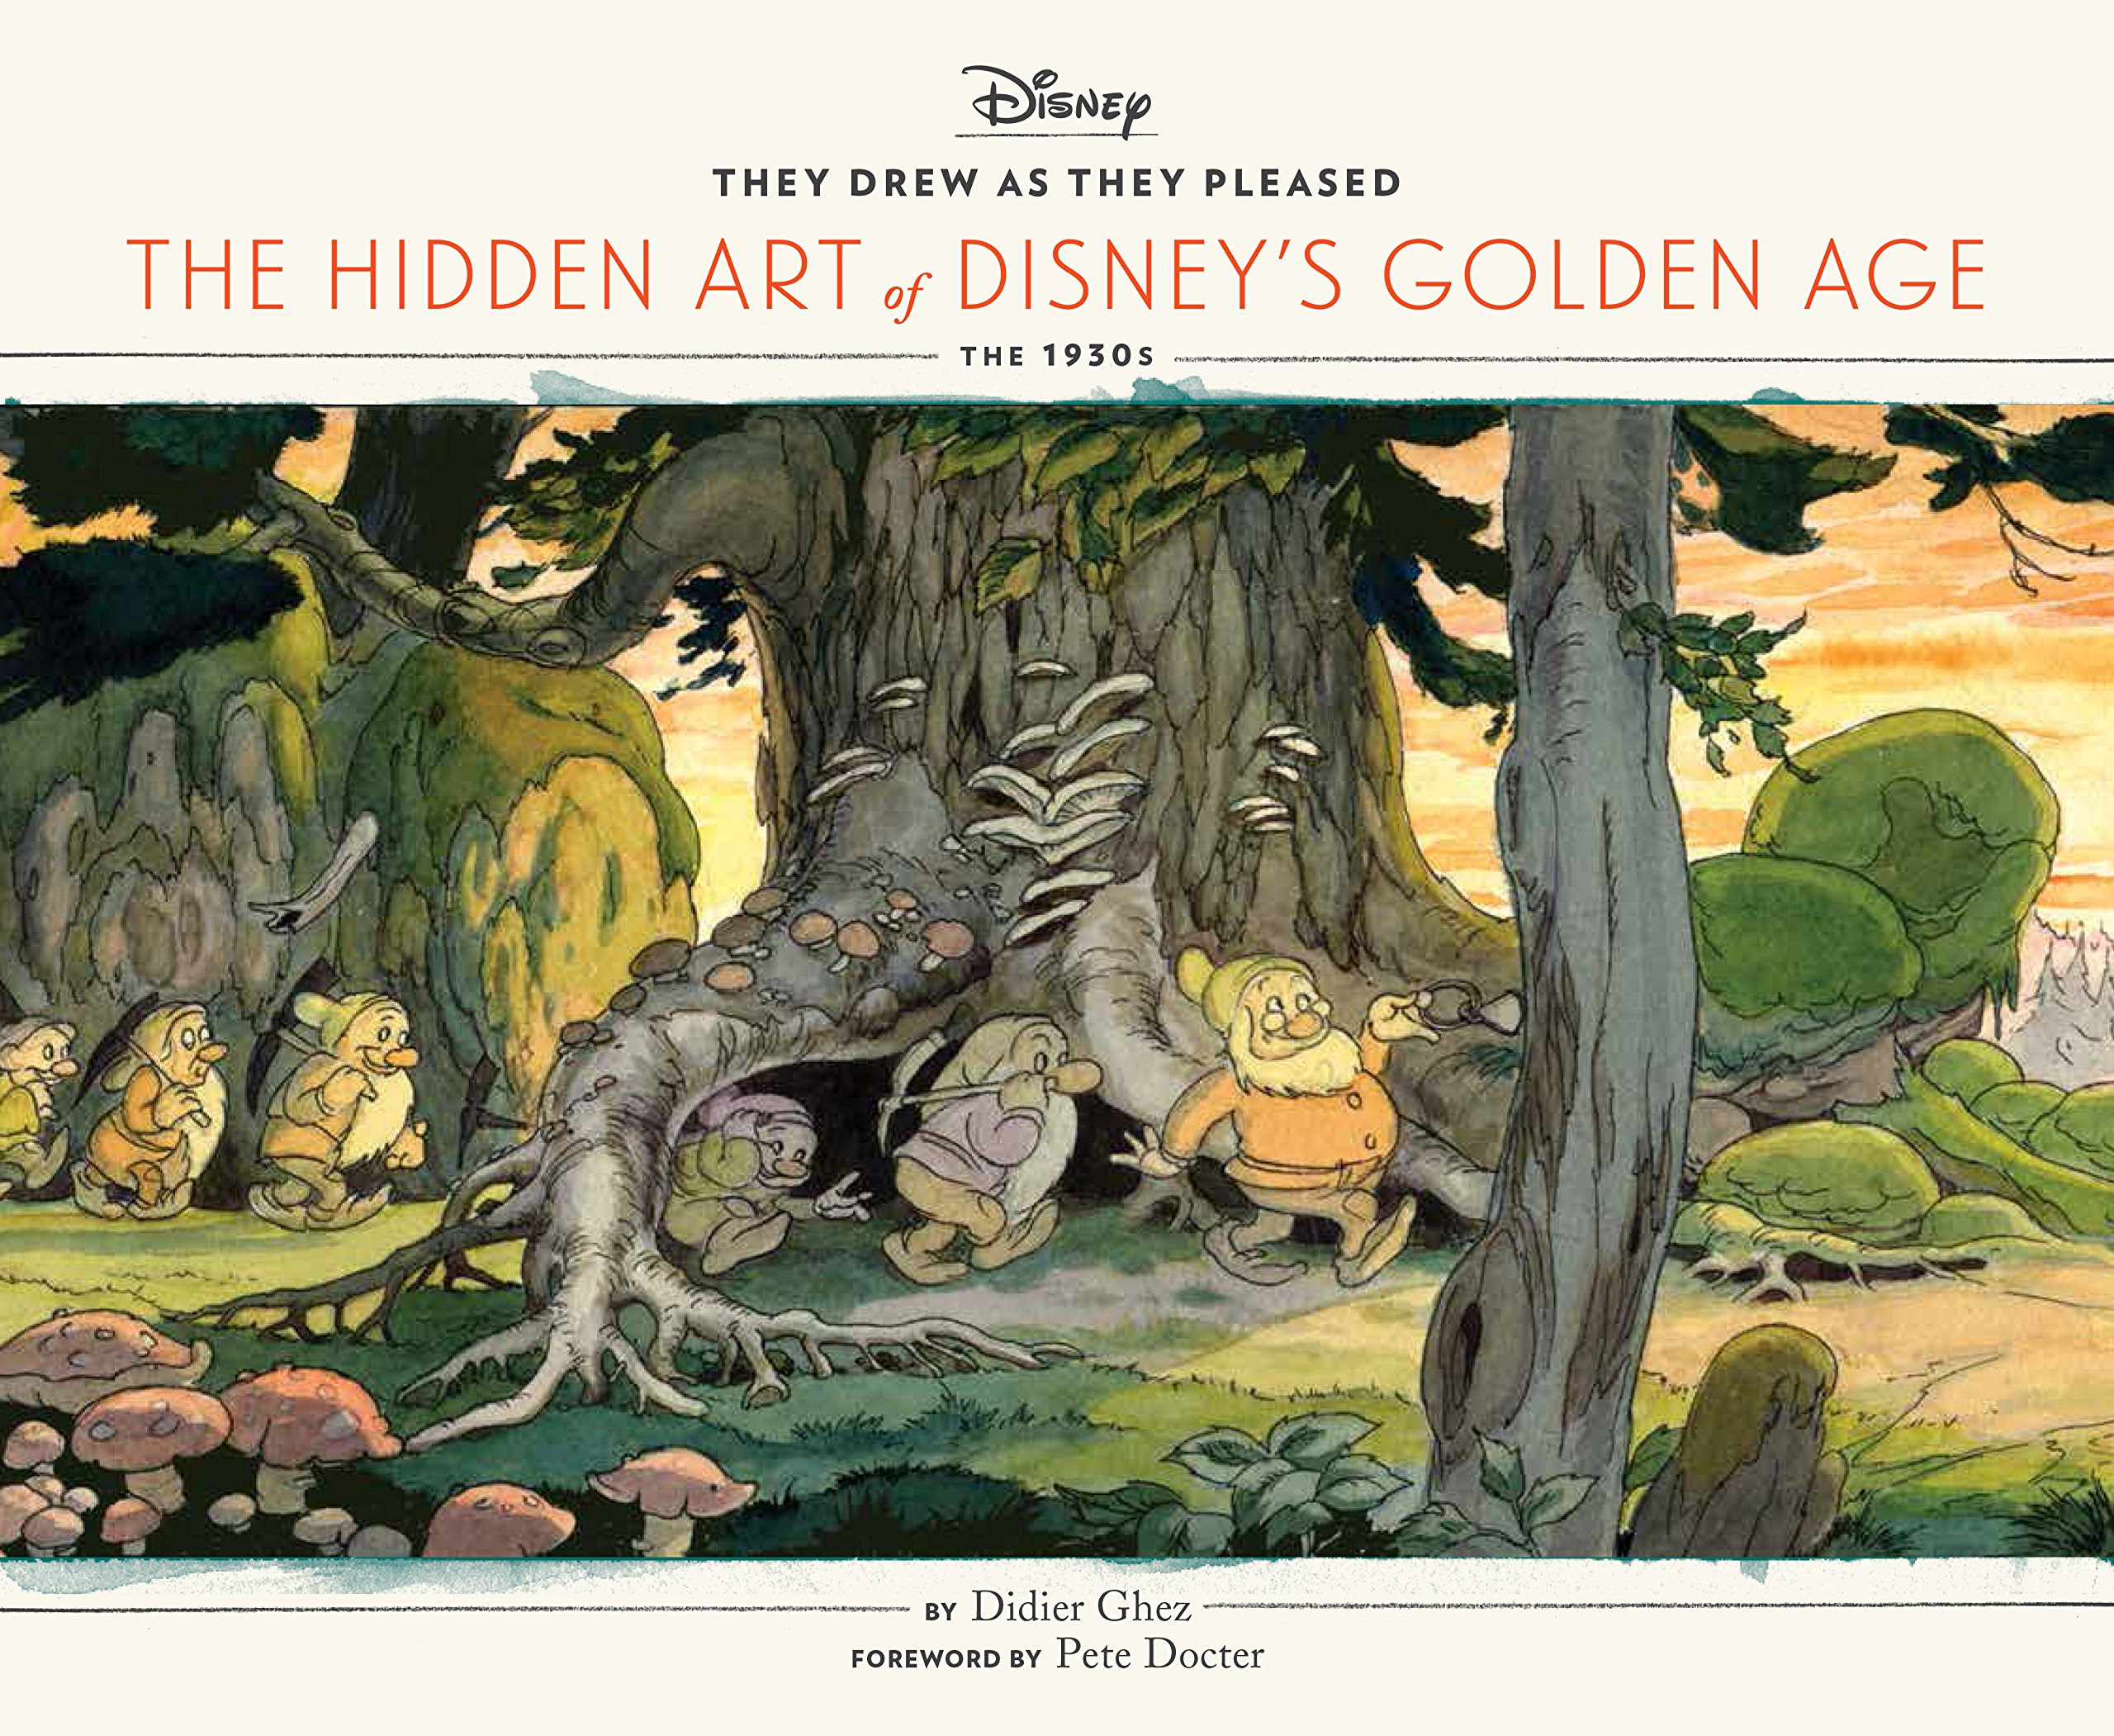 http://www.amazon.com/They-Drew-Pleased-Hidden-Disneys/dp/1452137439/ref=sr_1_1?ie=UTF8&qid=1442445110&sr=8-1&keywords=they+drew+as+they